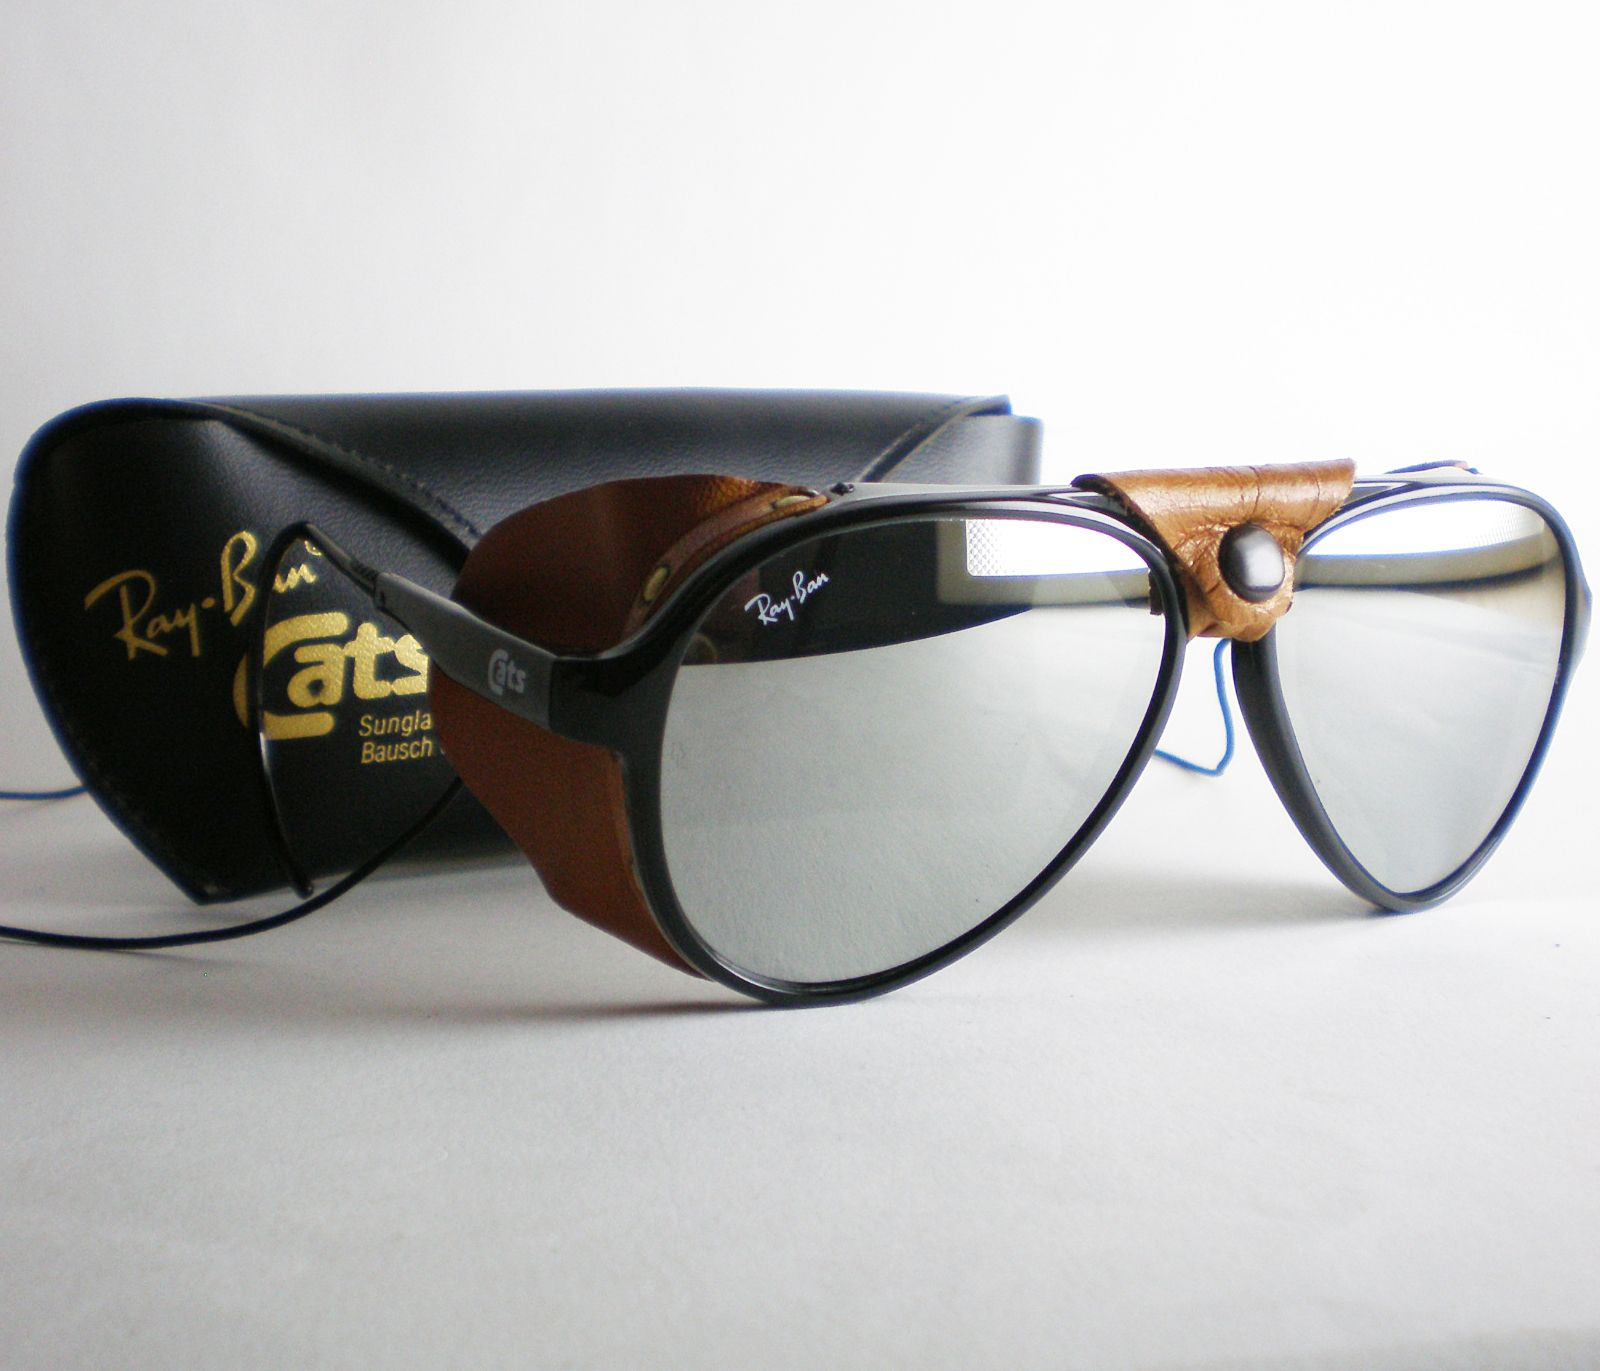 b688989e784802 Vintage Ray Ban CATS 8000 MIRRORED Sunglasses aviator side shield leathers  black